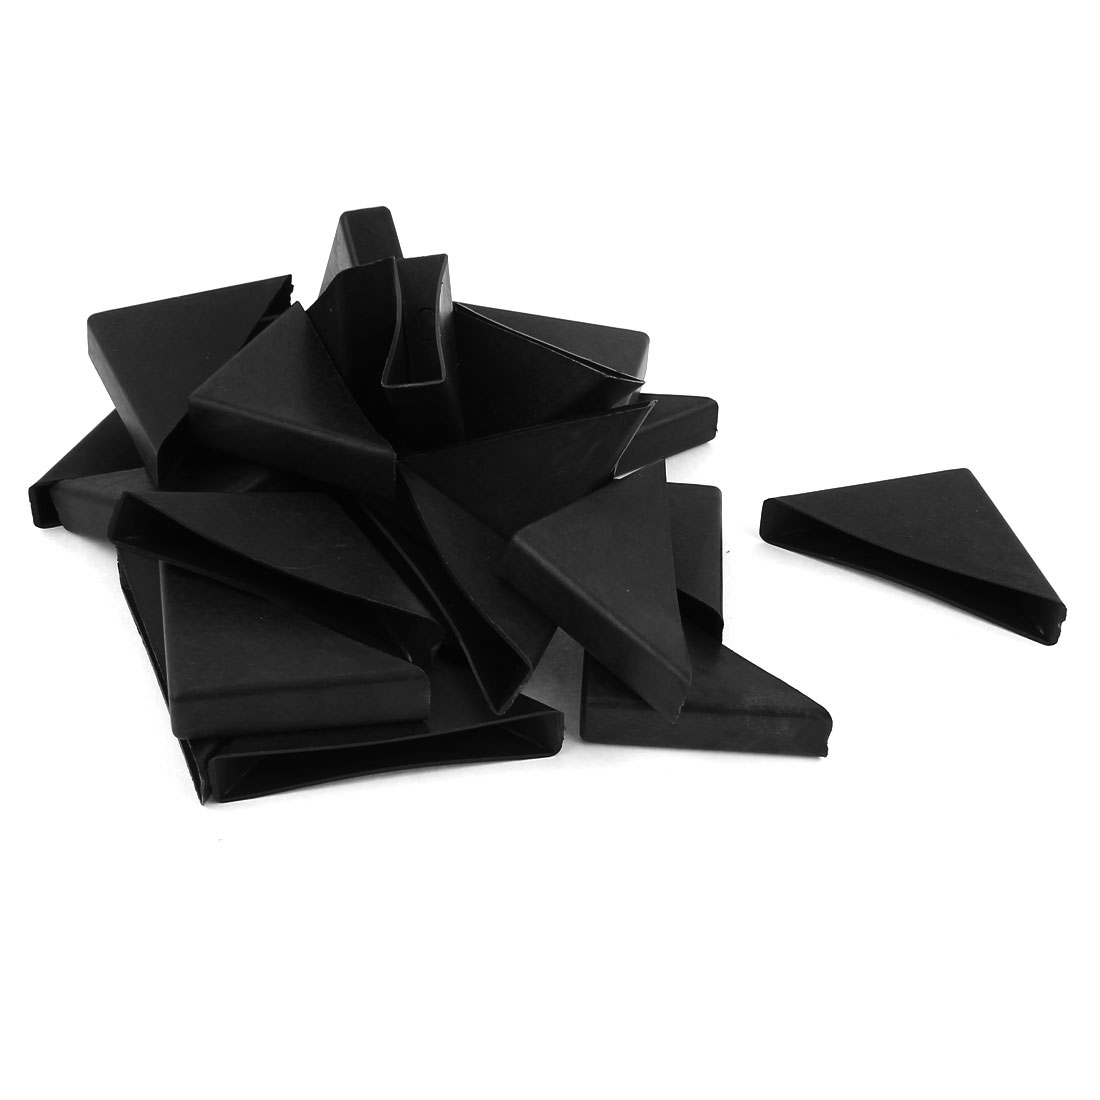 24 Pcs 12mm x 75mm Black Plastic Recessed Furniture Table Couch Corner Protectors